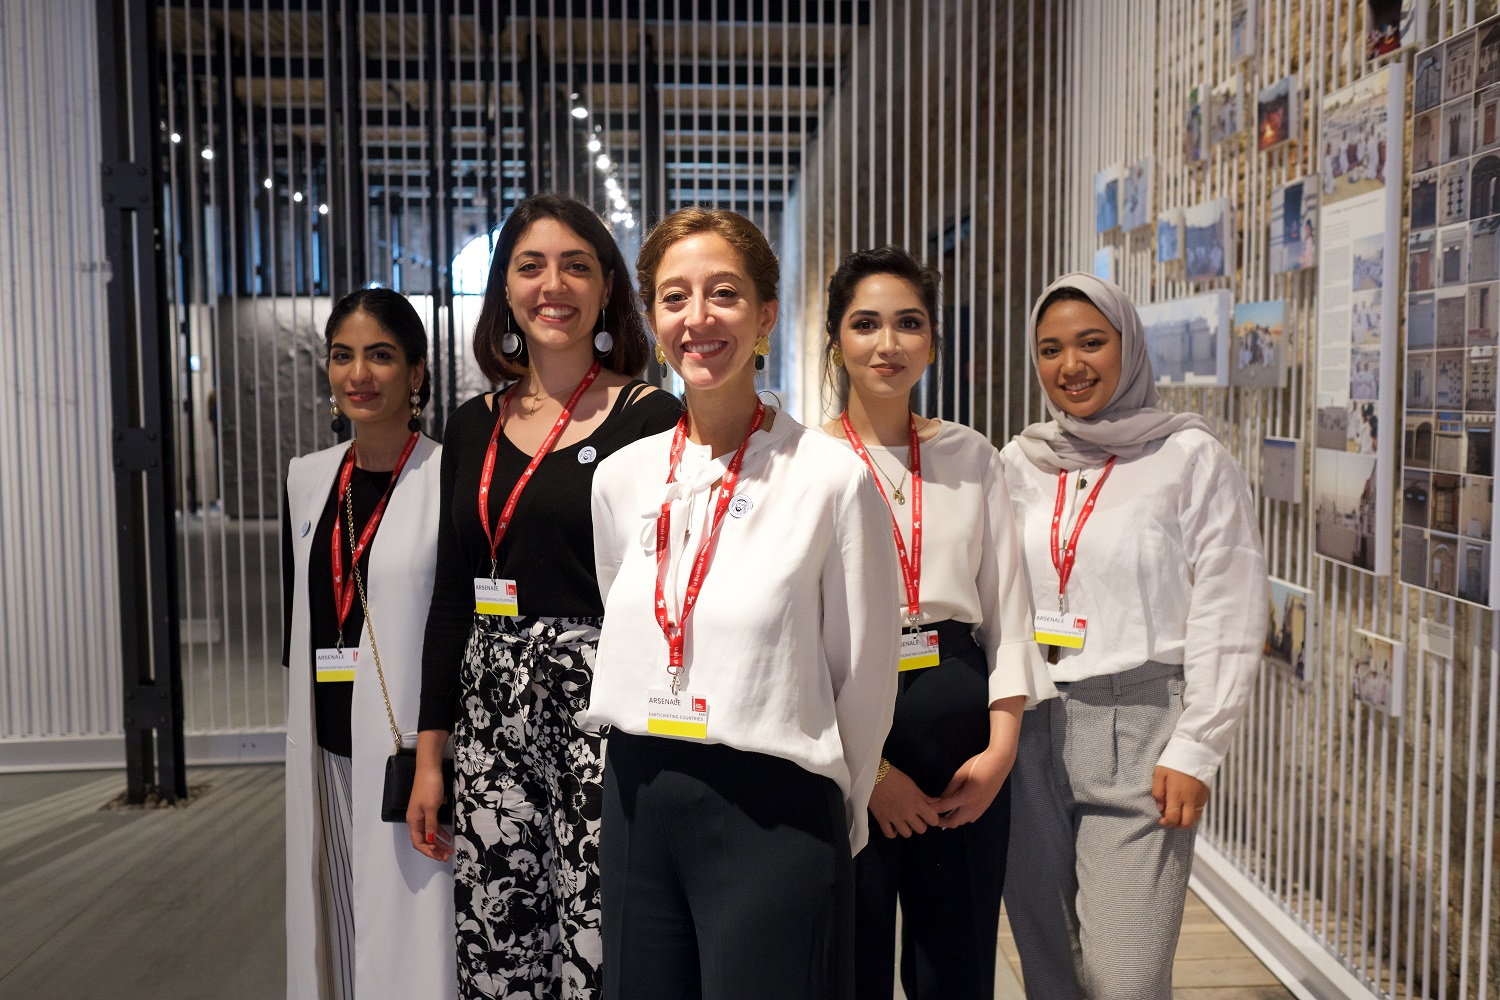 applications for national pavilion uae's 2019 venice internship now open 2